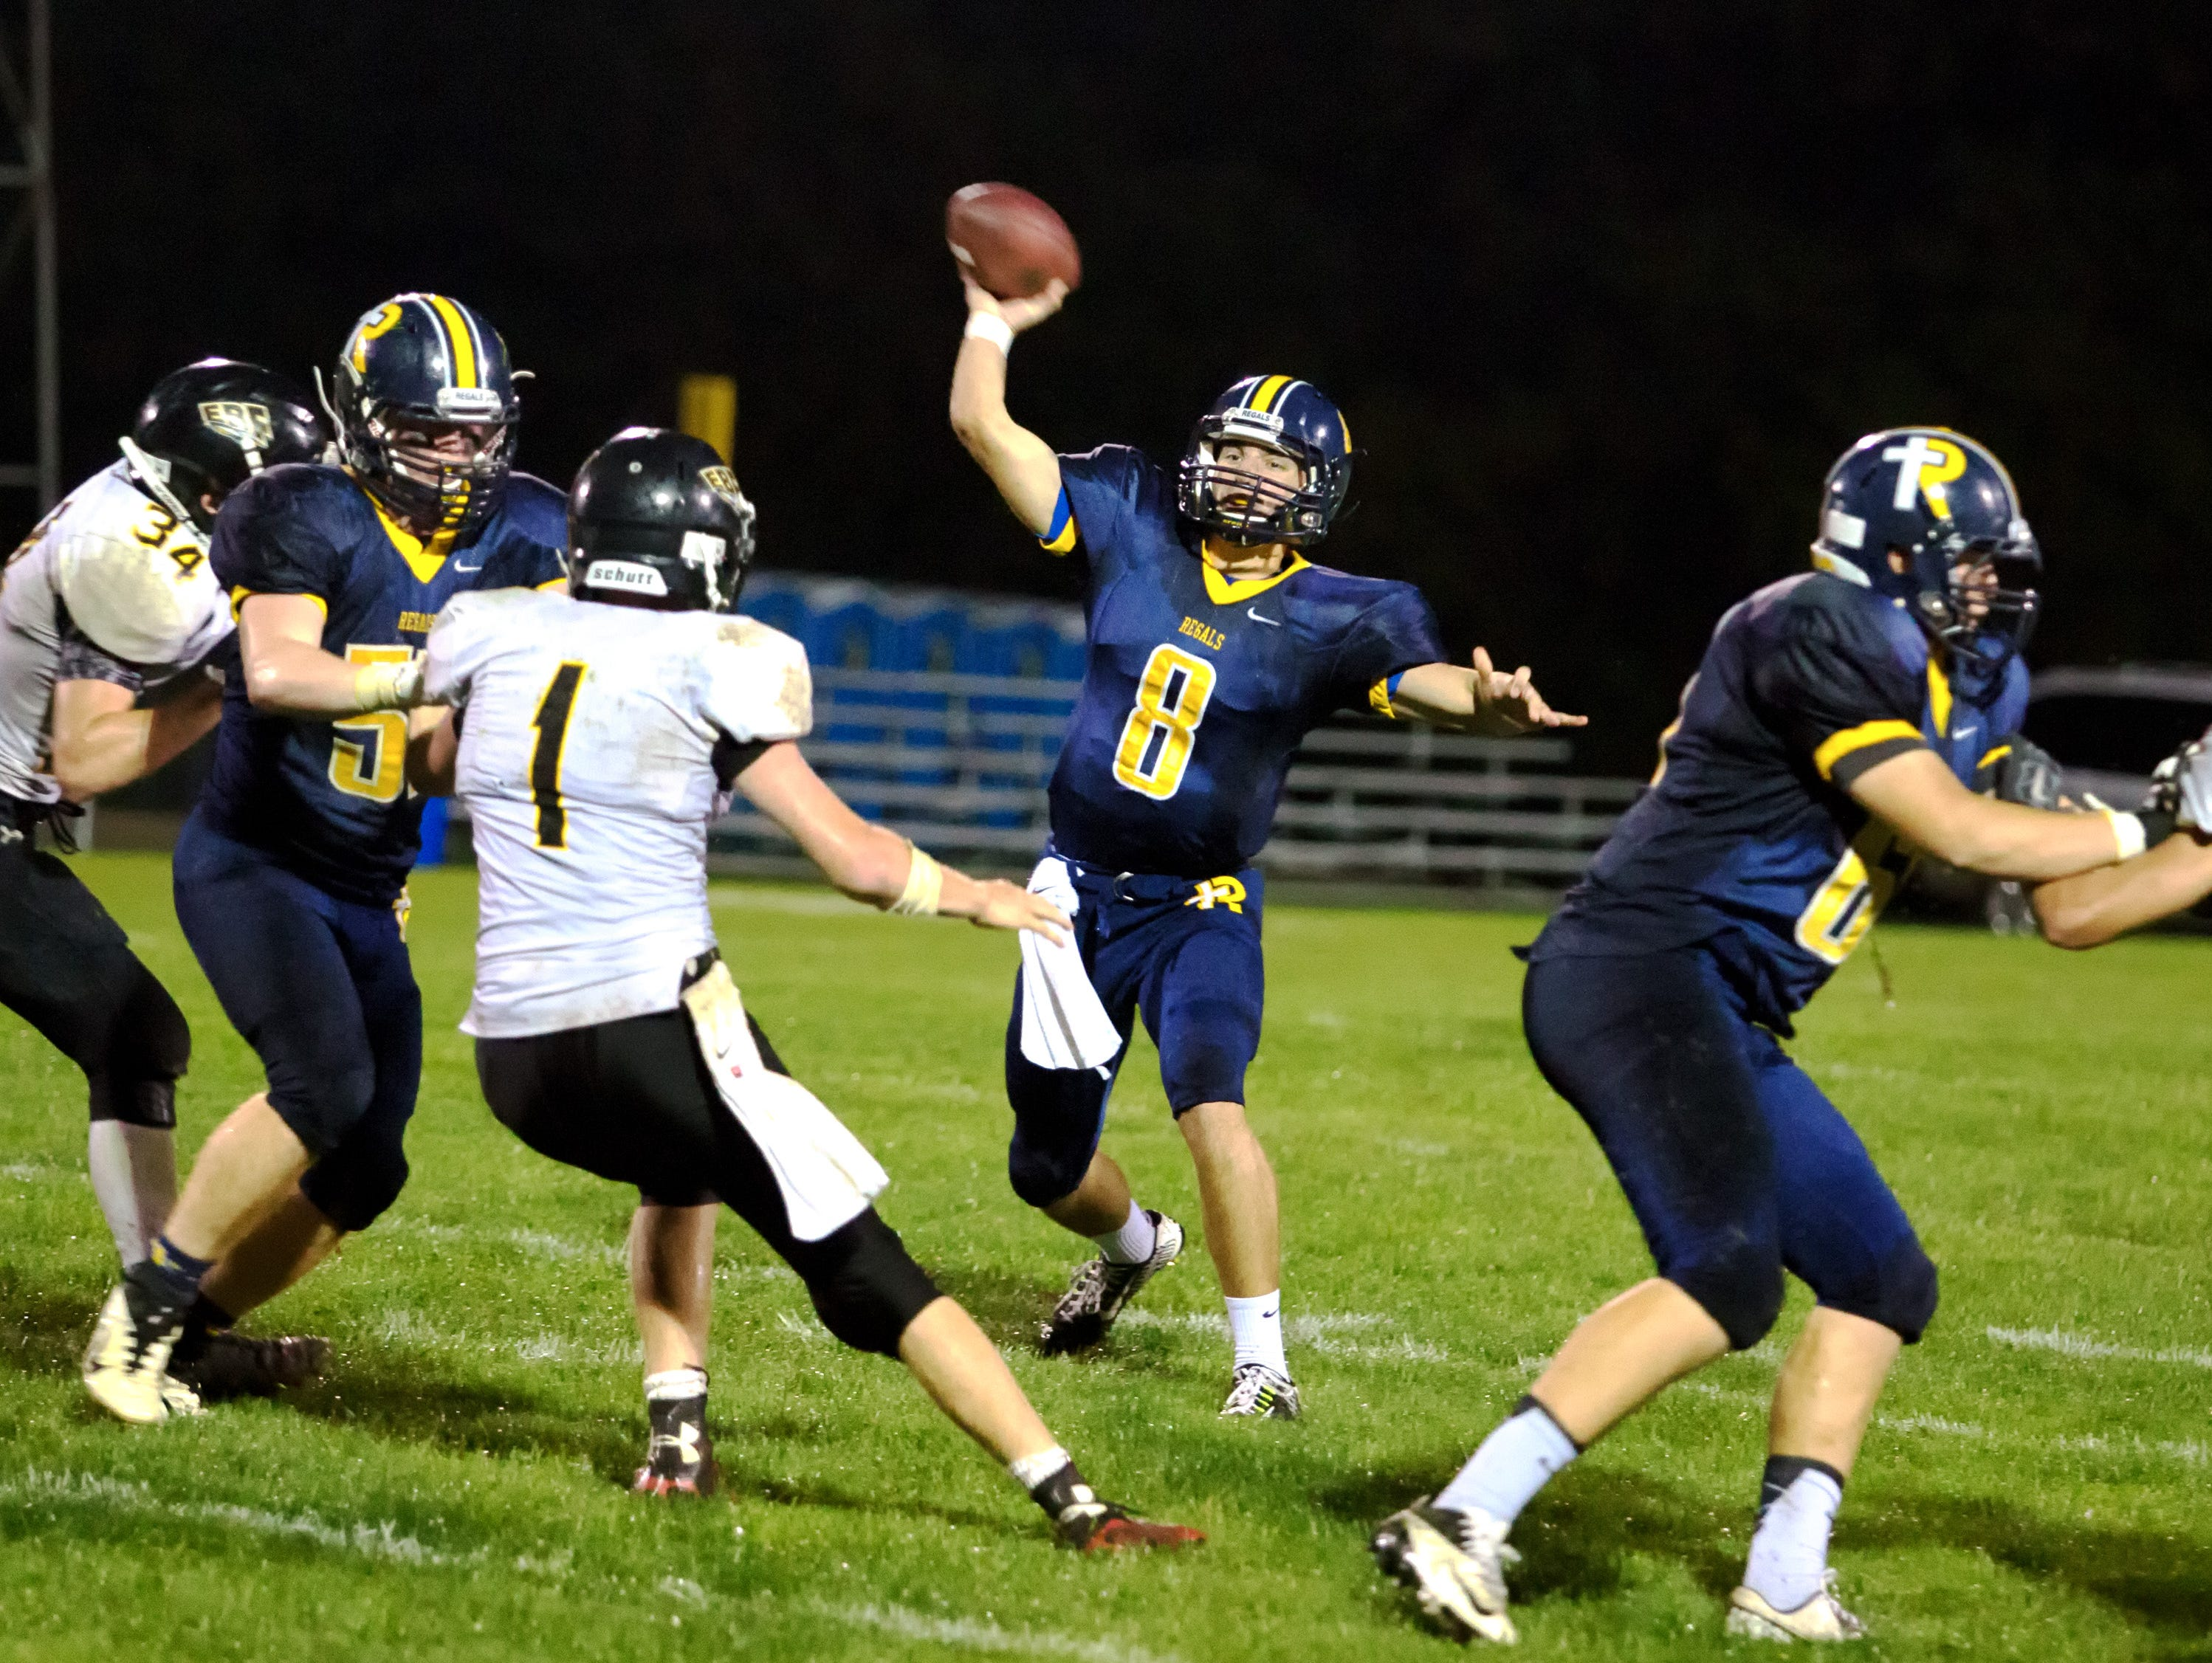 Iowa City Regina's Nathan Stenger (8) tosses a pass against Eddyville-Blakesburg-Fremont on Sept. 18. The Regals travel to Highland for a 7 p.m. matchup on Friday.